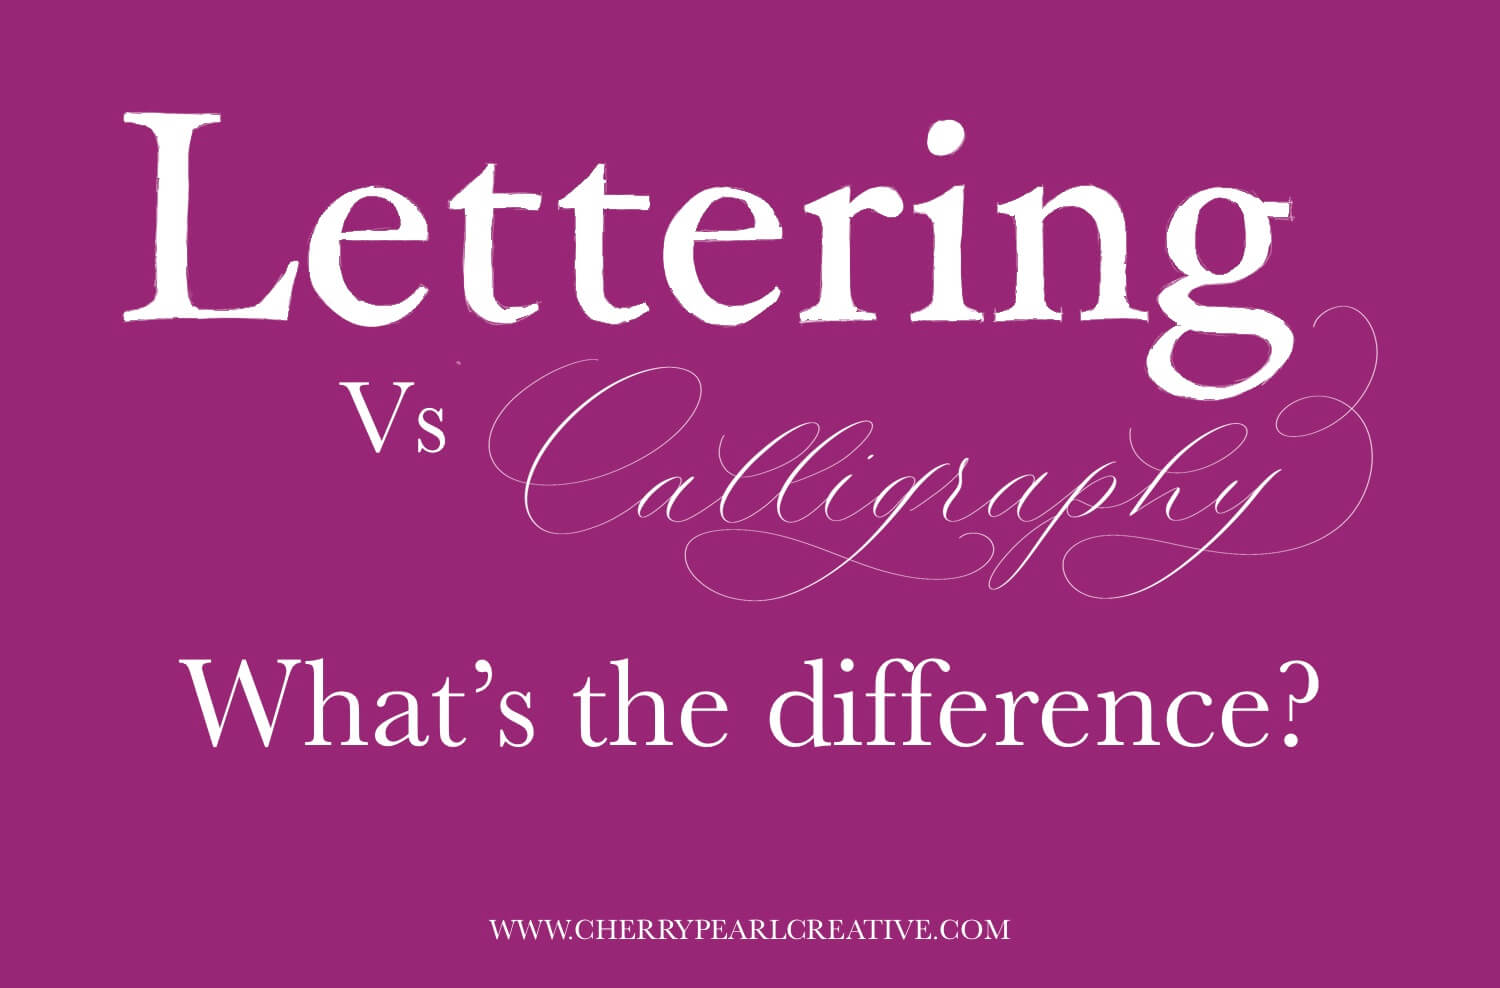 Difference between lettering and calligraphy